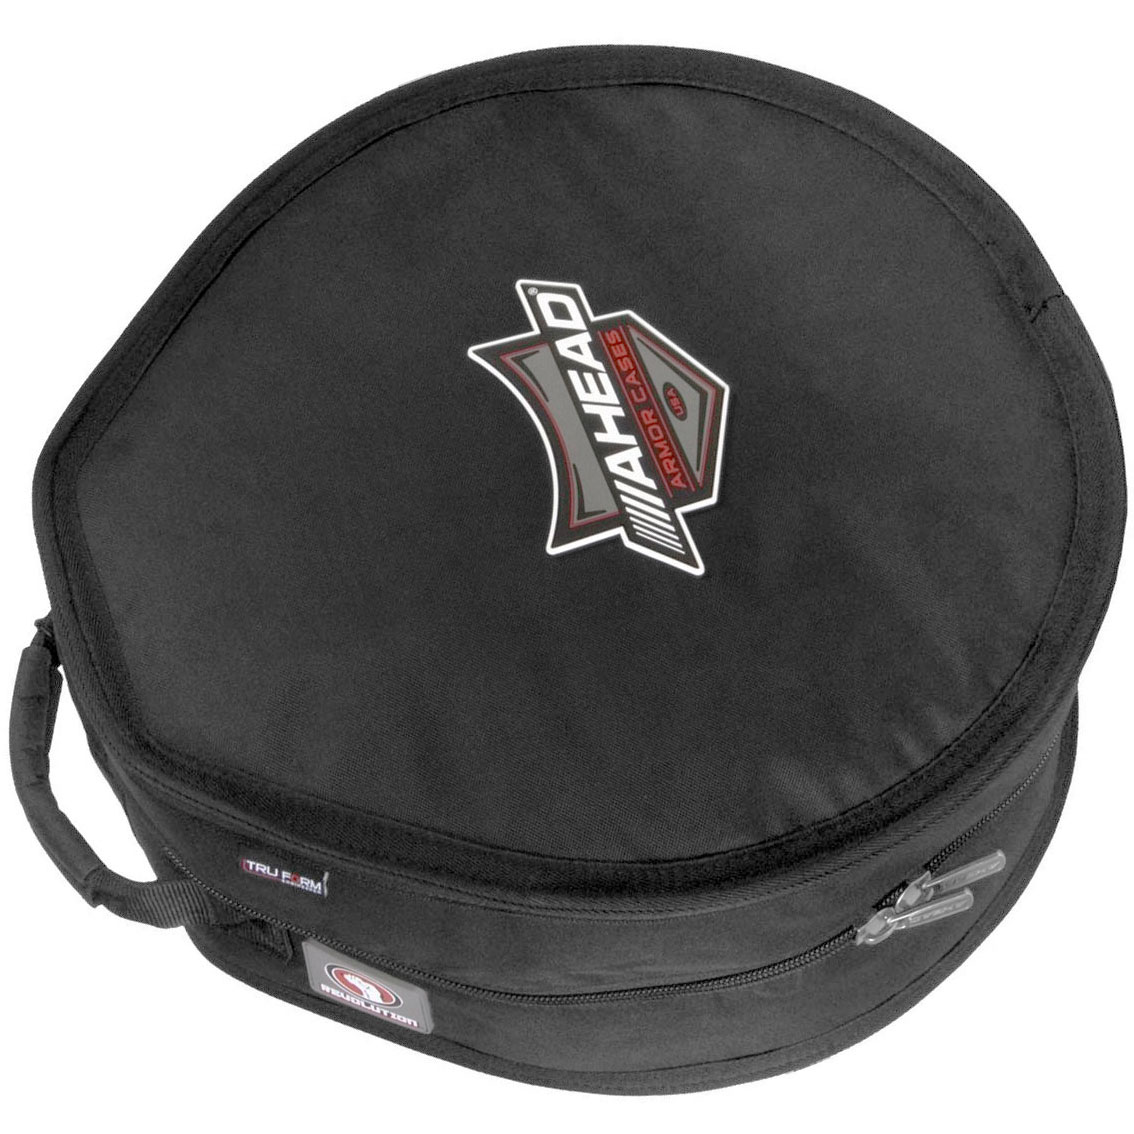 "Ahead 5"" (Deep) x 14"" (Diameter) Dyna-Sonic Snare Case"